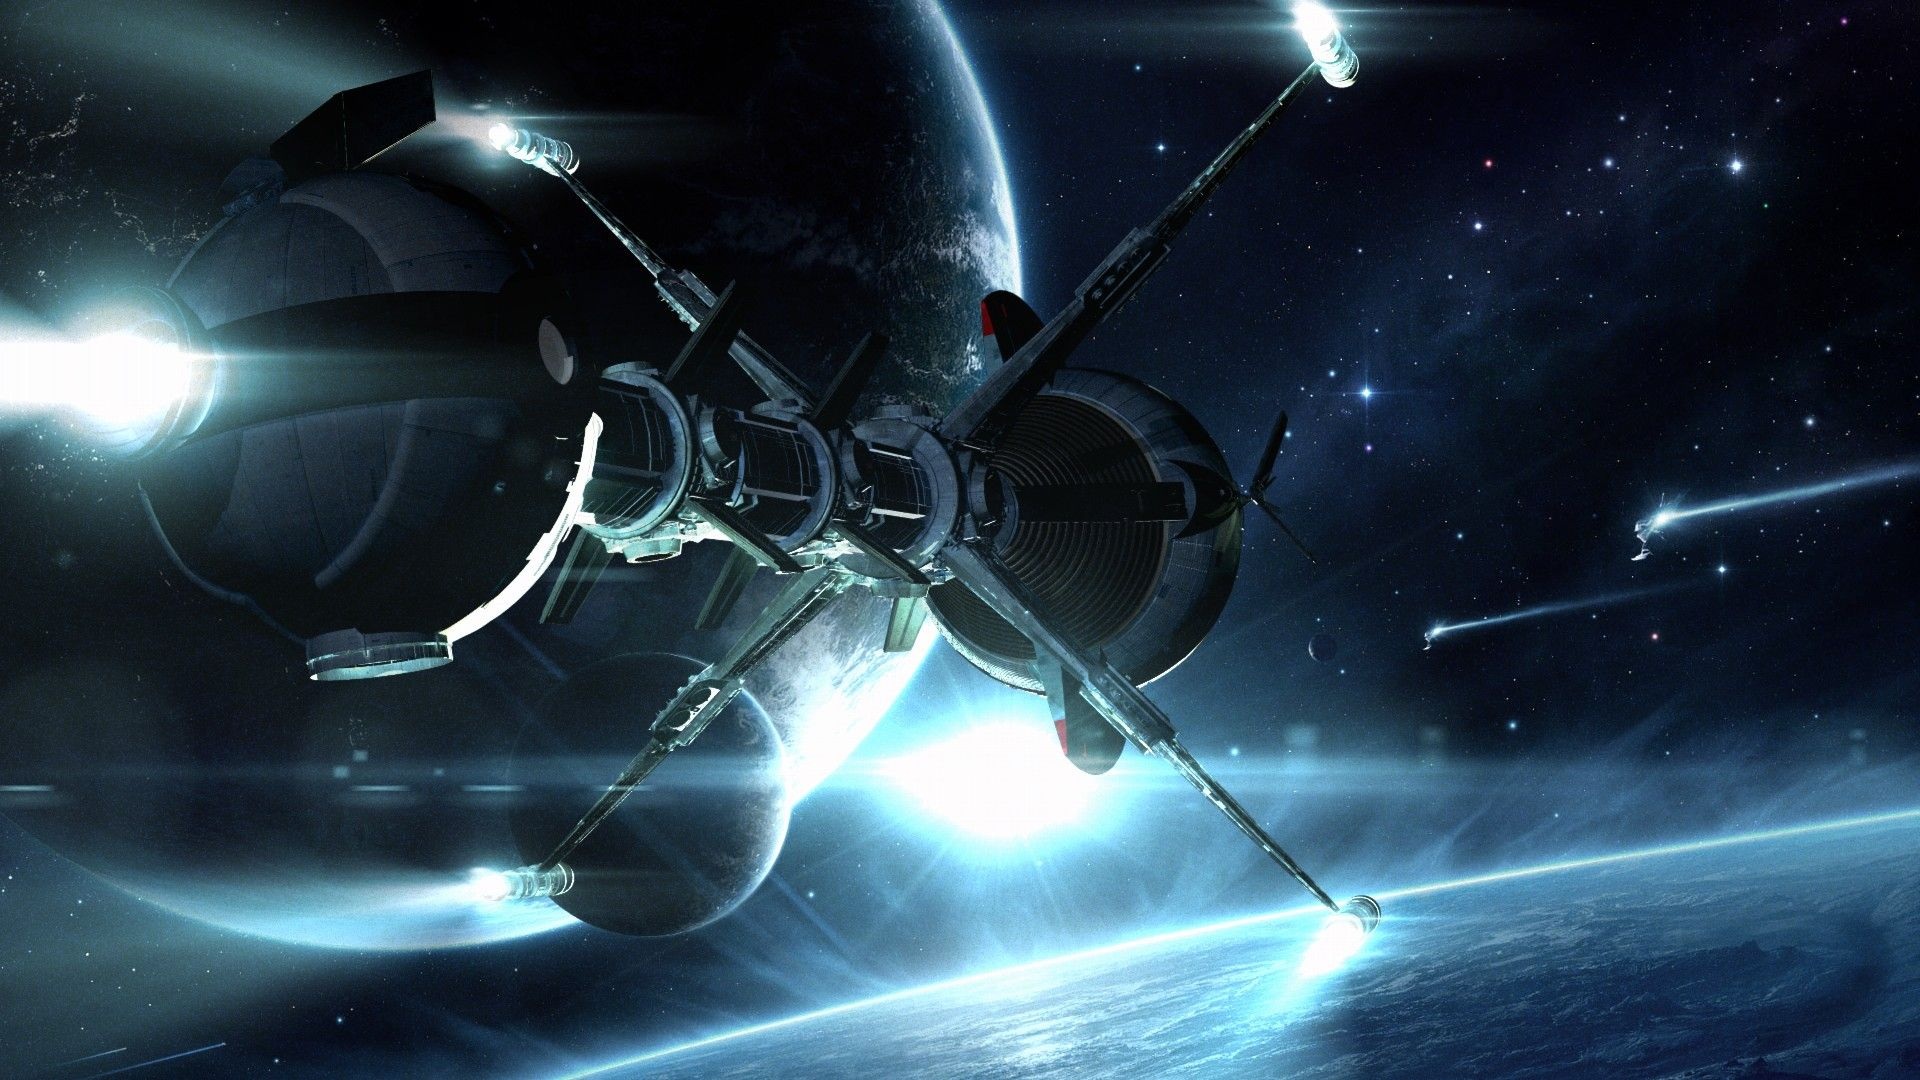 Spaceship Wallpaper 1920X1080 Hd Images 3 HD Wallpapers